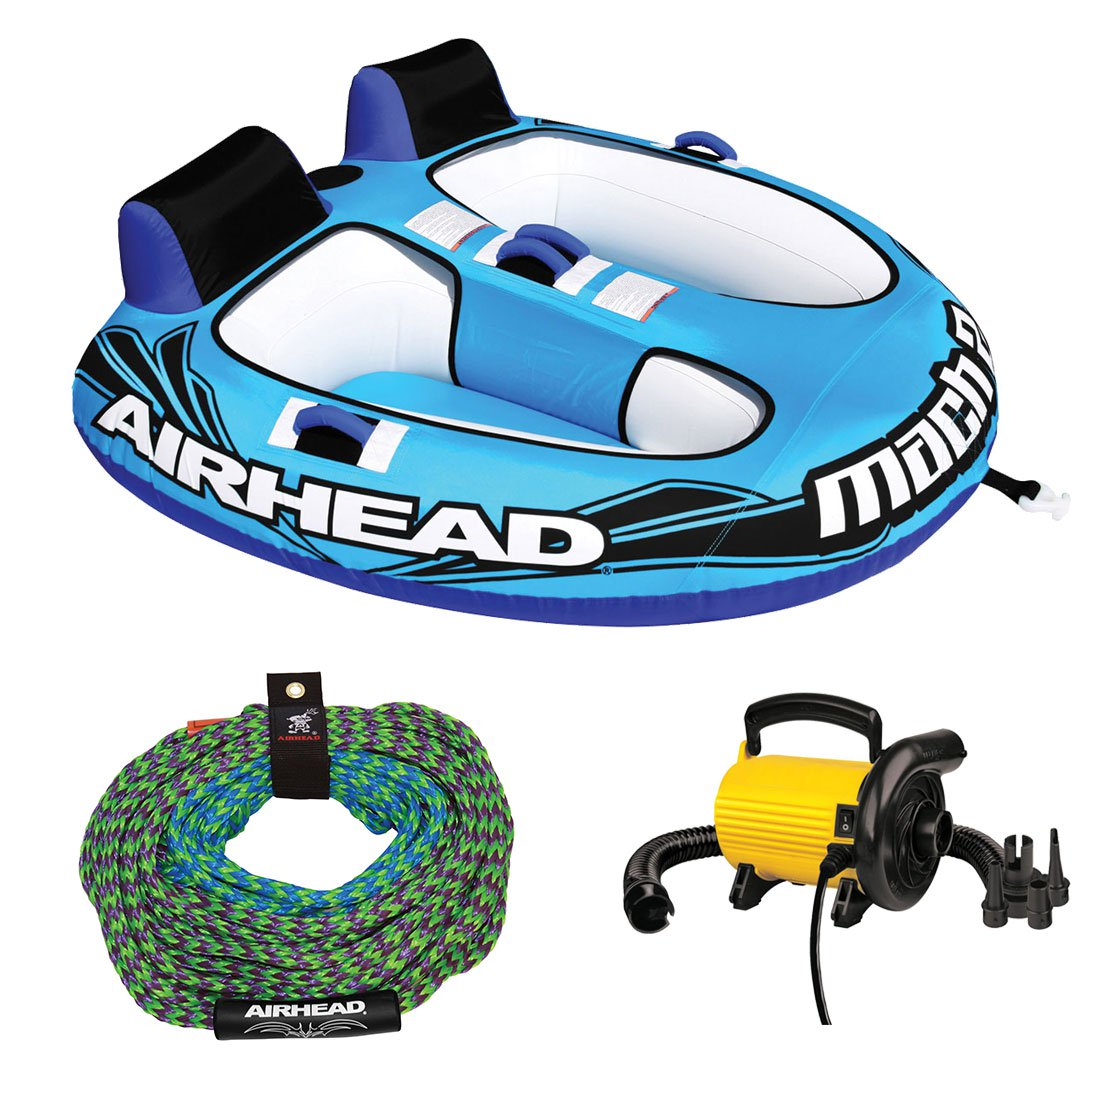 Airhead Mach 2 Inflatable 2 Rider Water Towable Tube w  50-60' Tow Rope & Pump by Kwik Tek